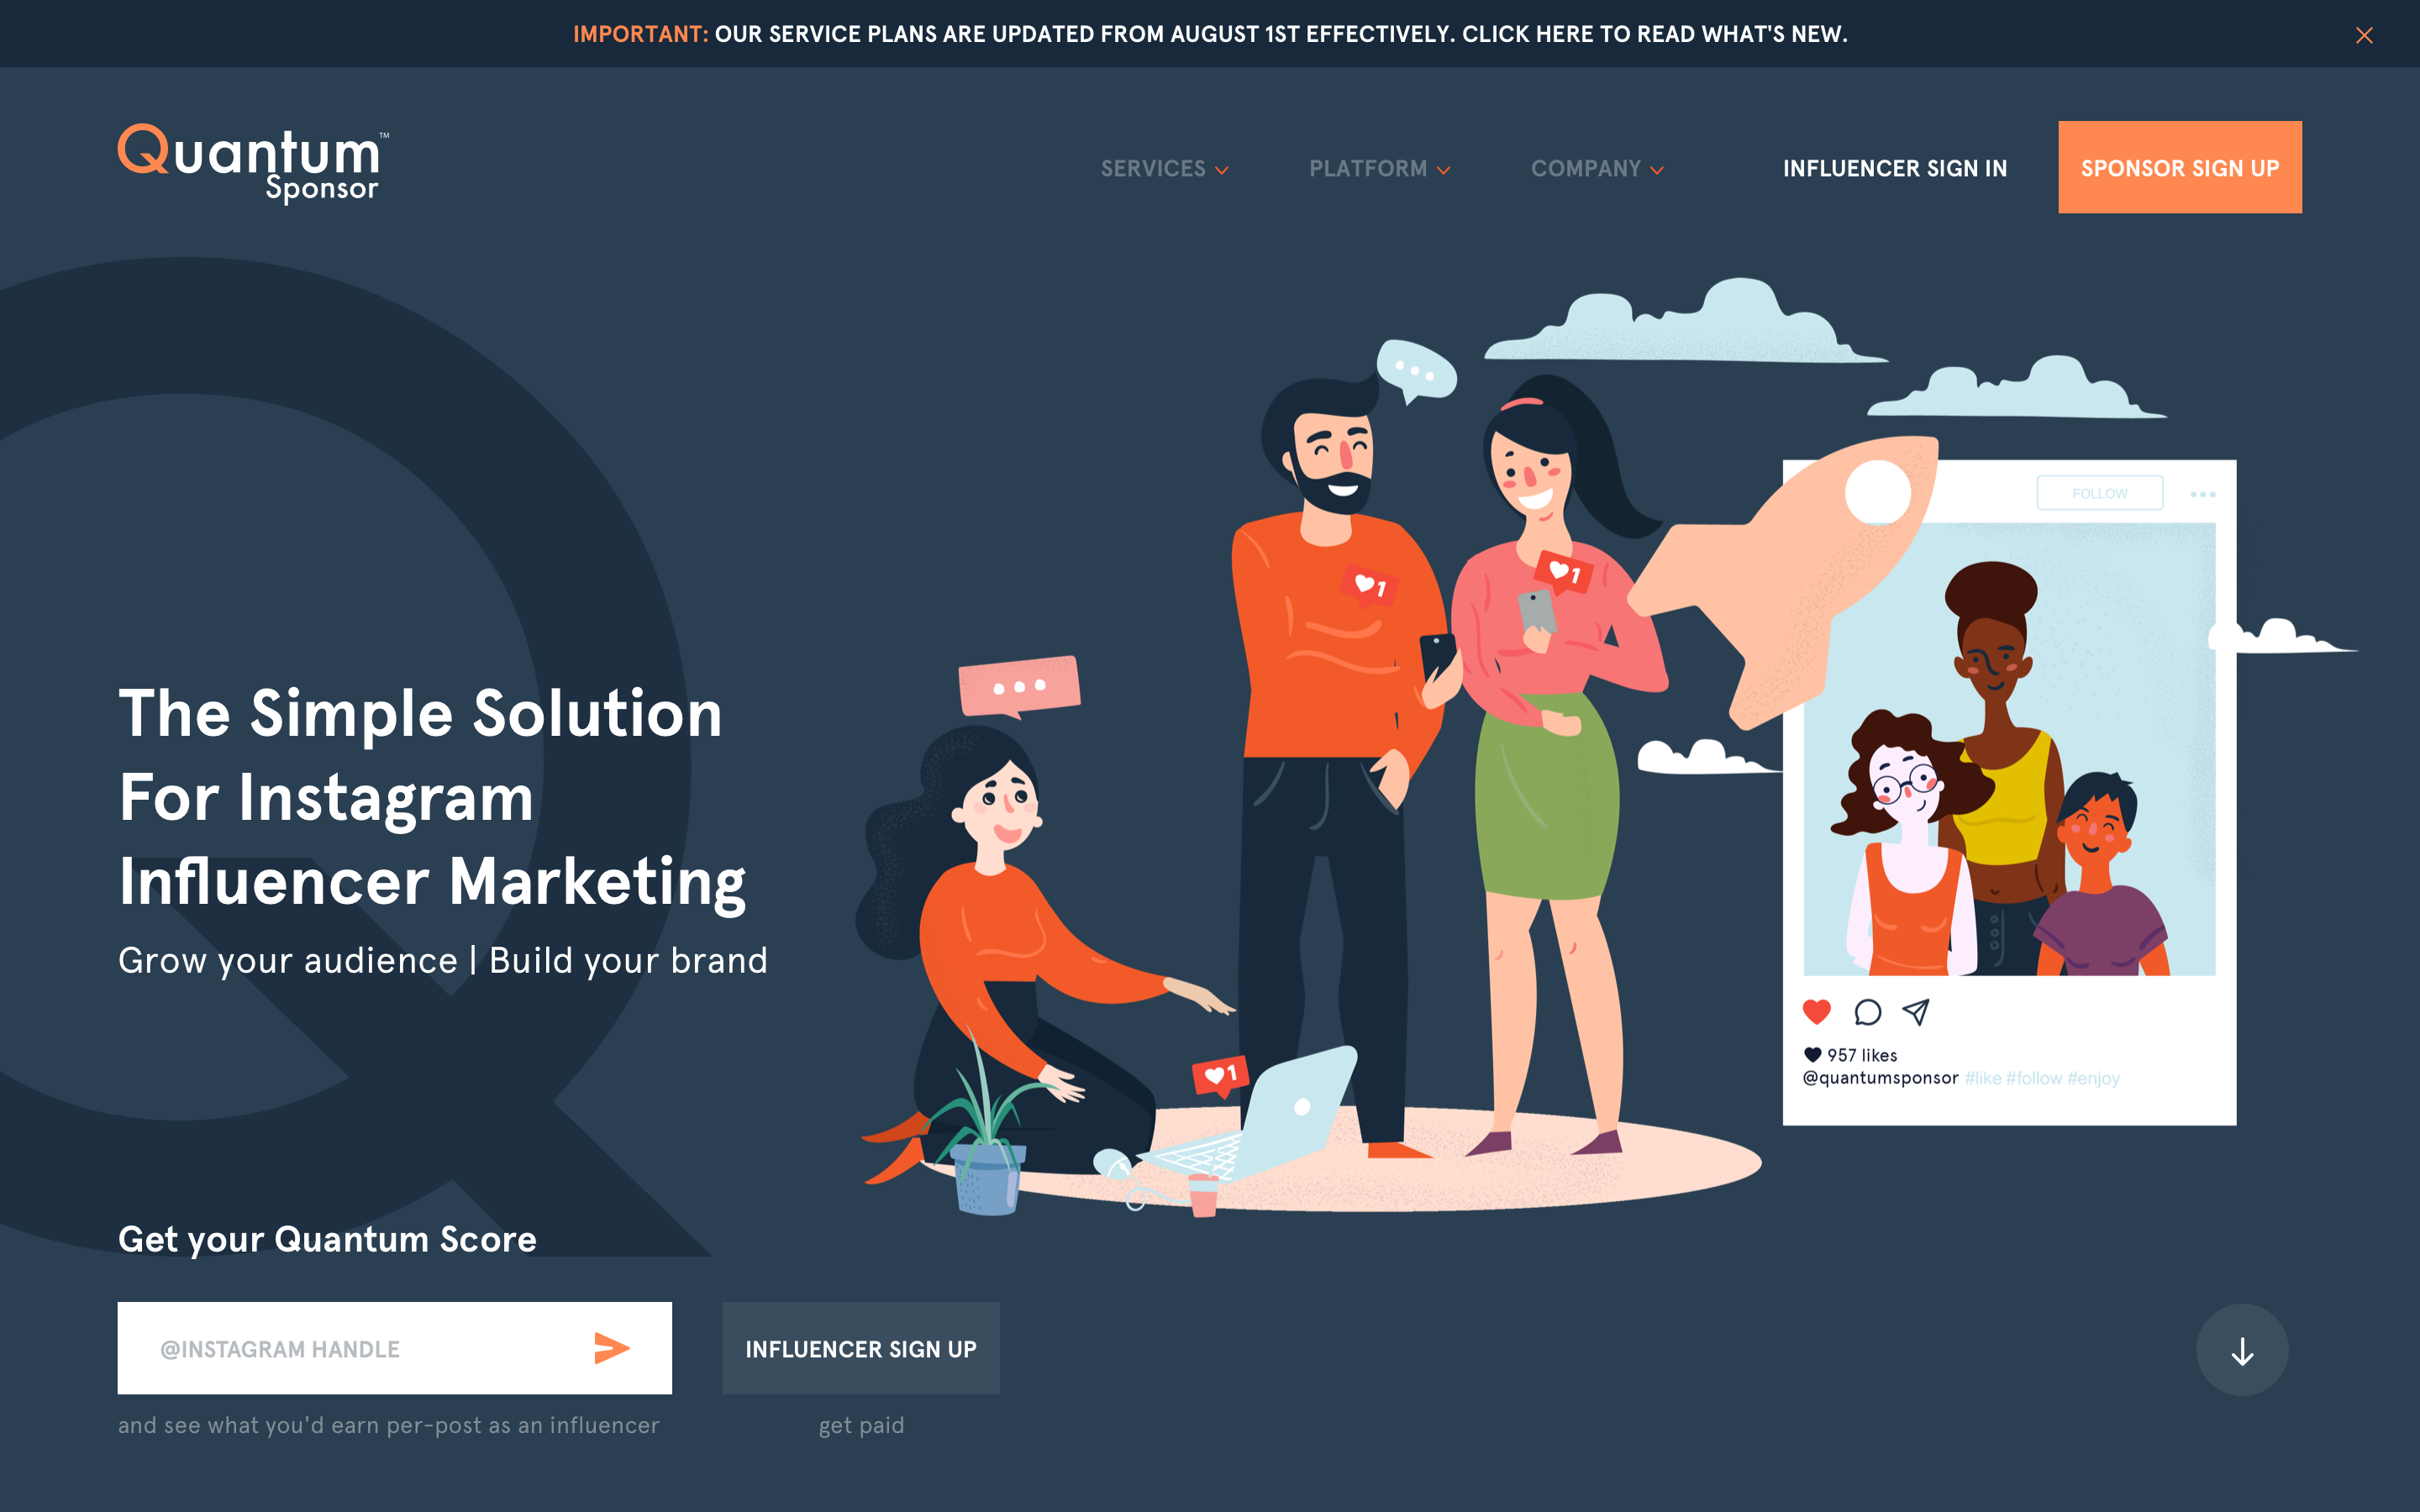 Quantumsponsor home page UX/UI design and custom illustration